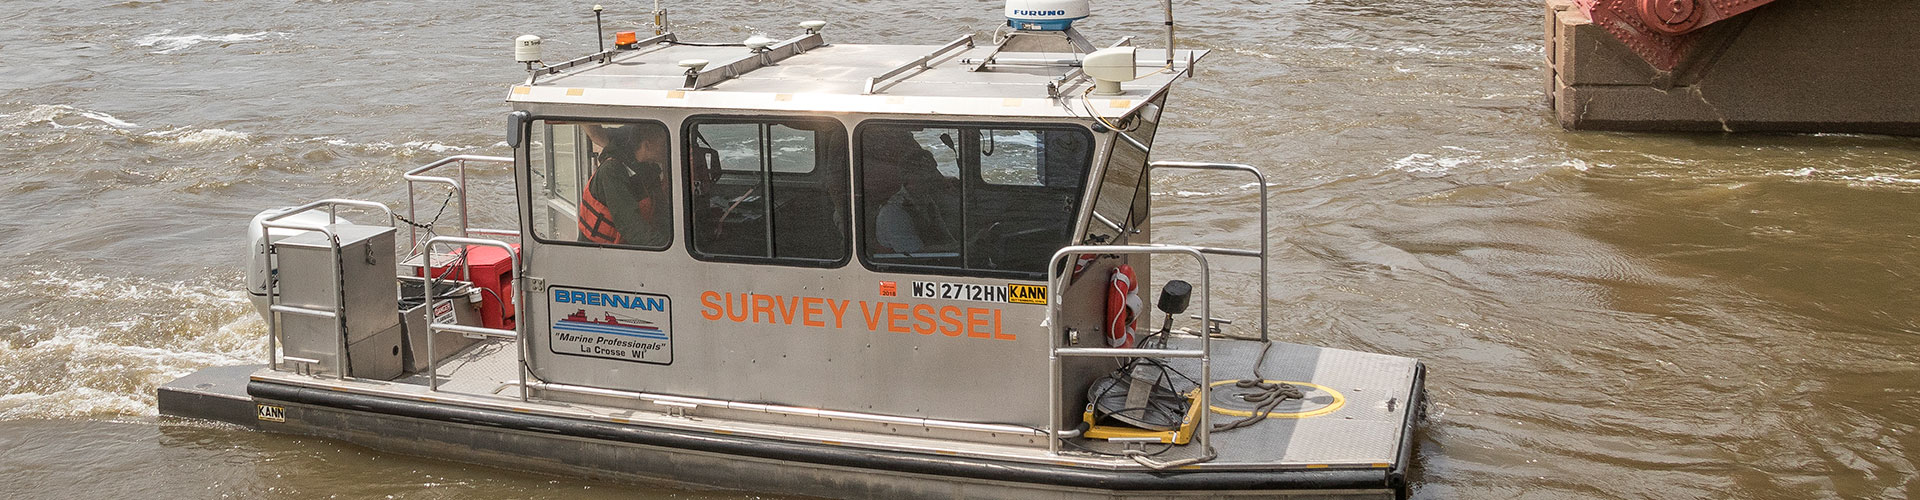 dam inspections, hydrographic survey, multibeam survey, underwater survey, bathymetric survey, dam surveys